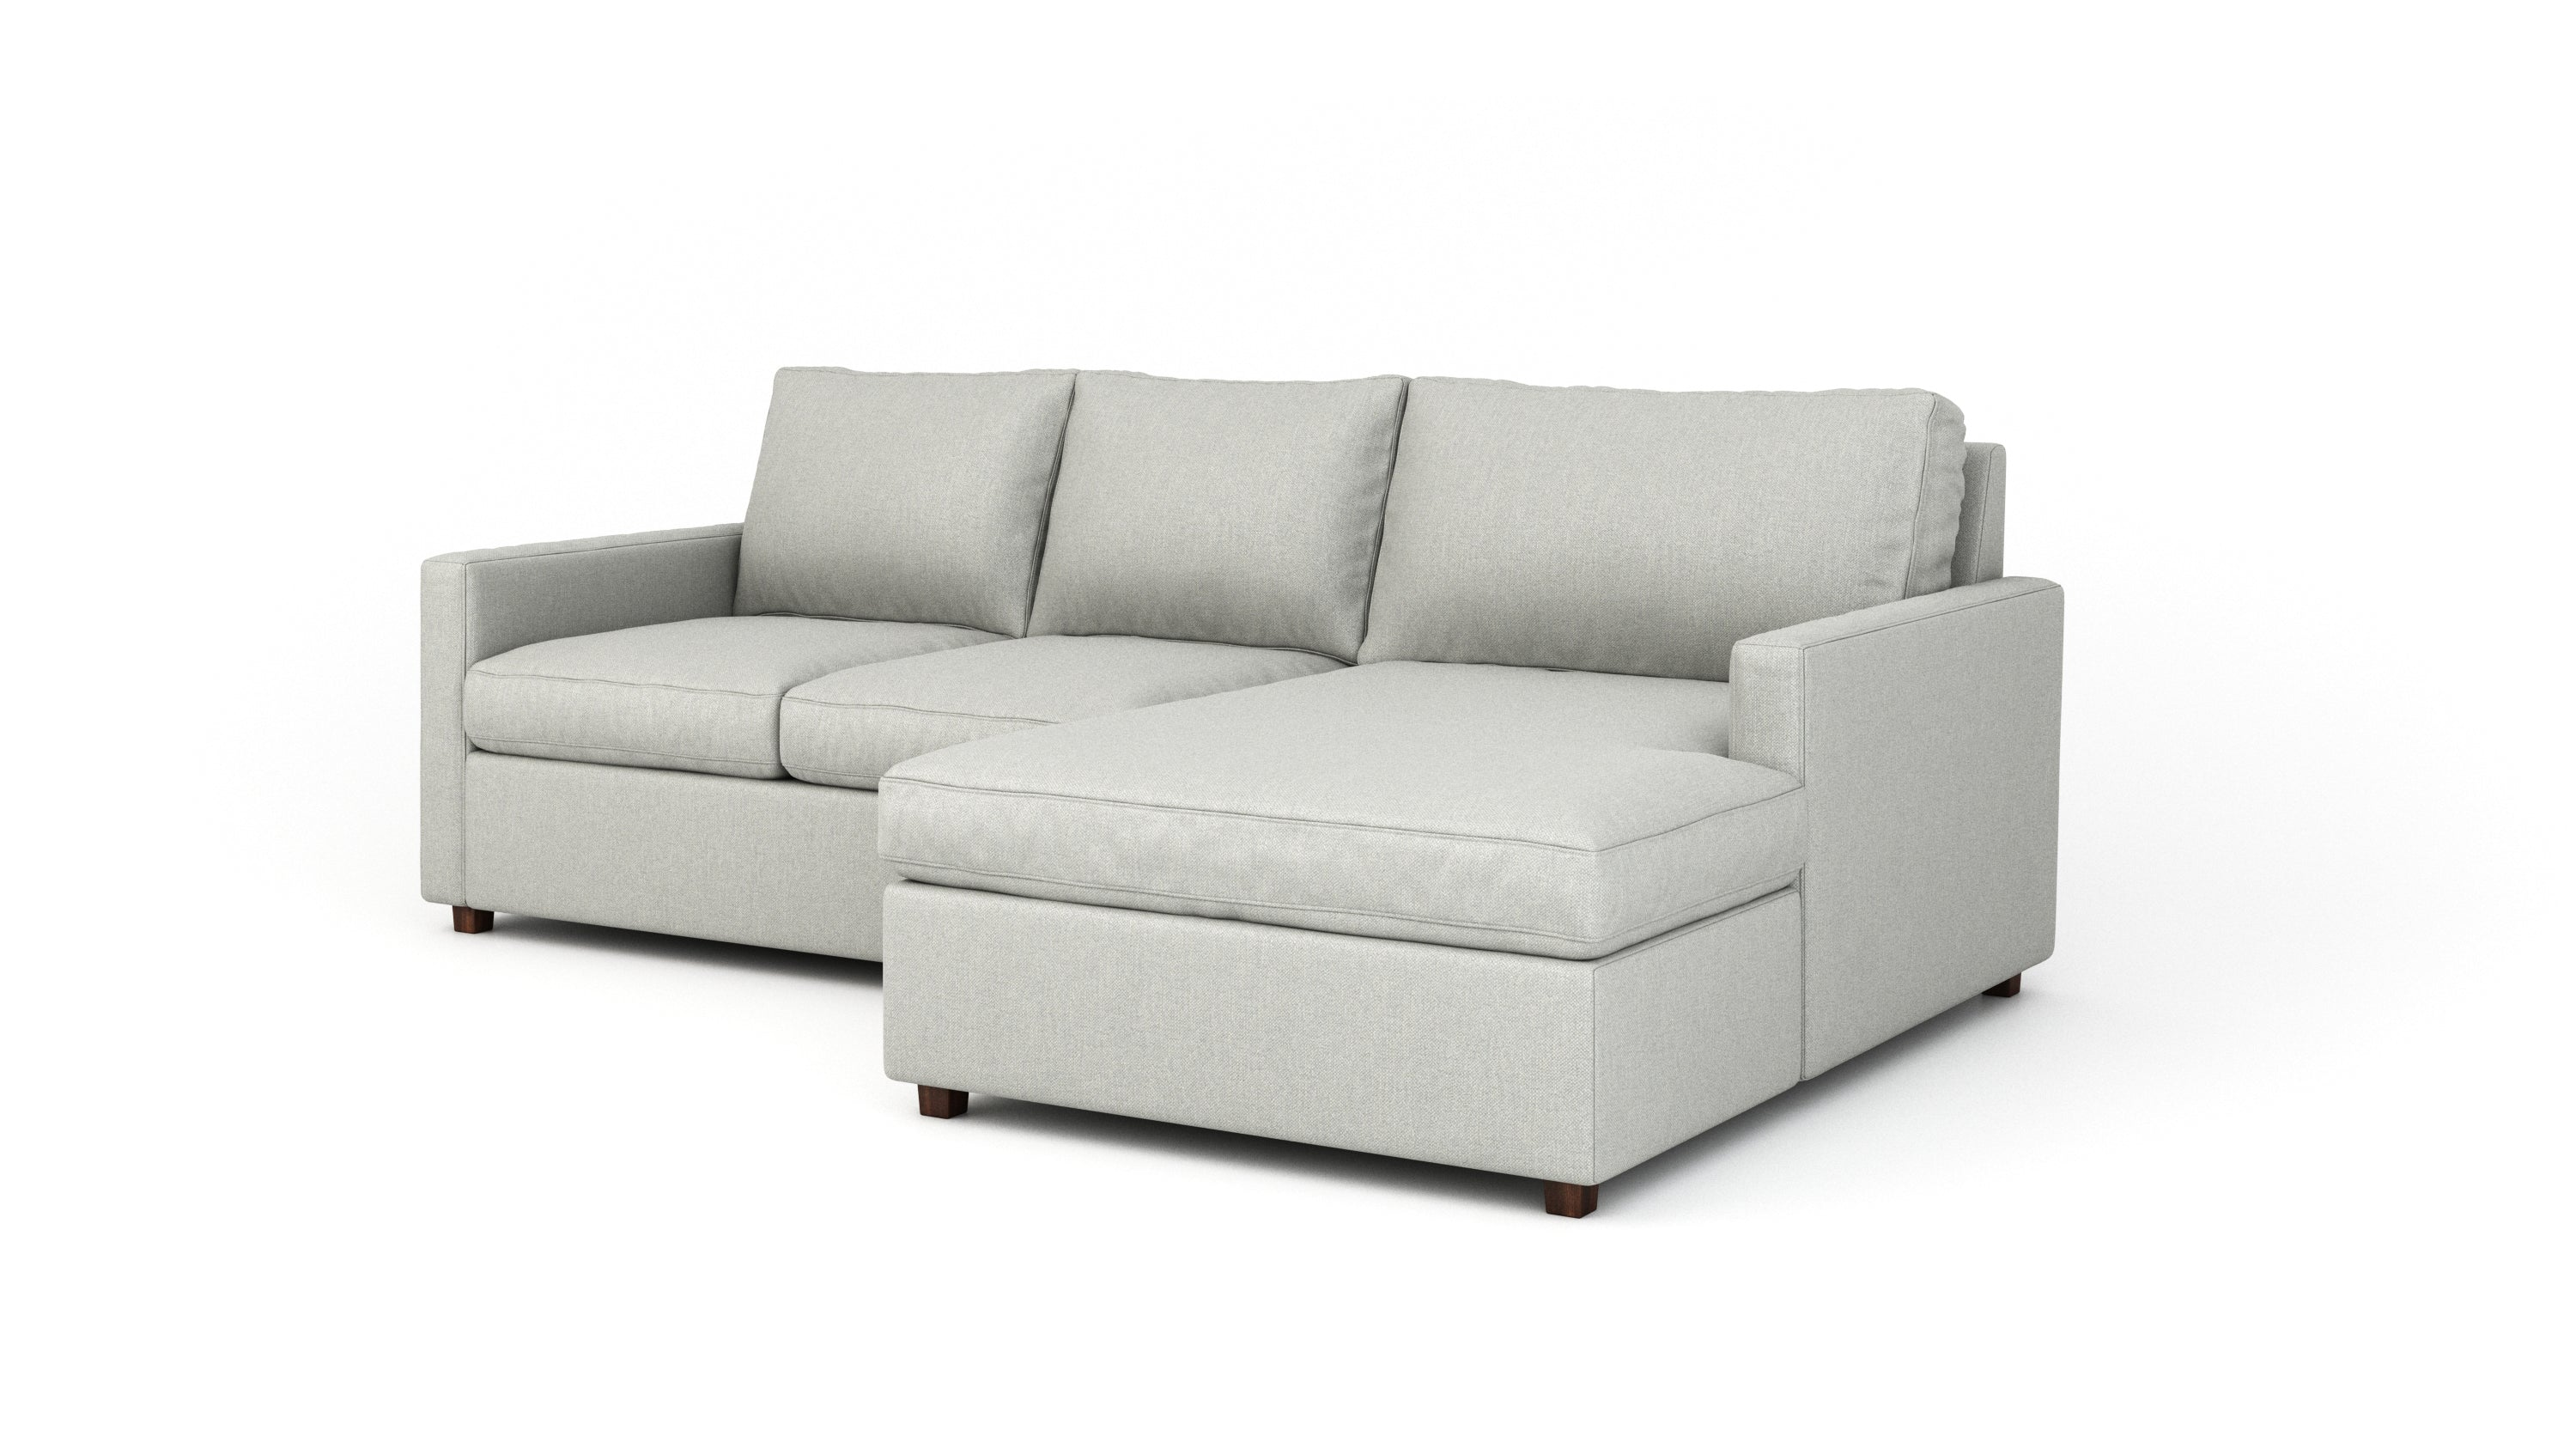 Couch Potato Lite Sofa With Chaise